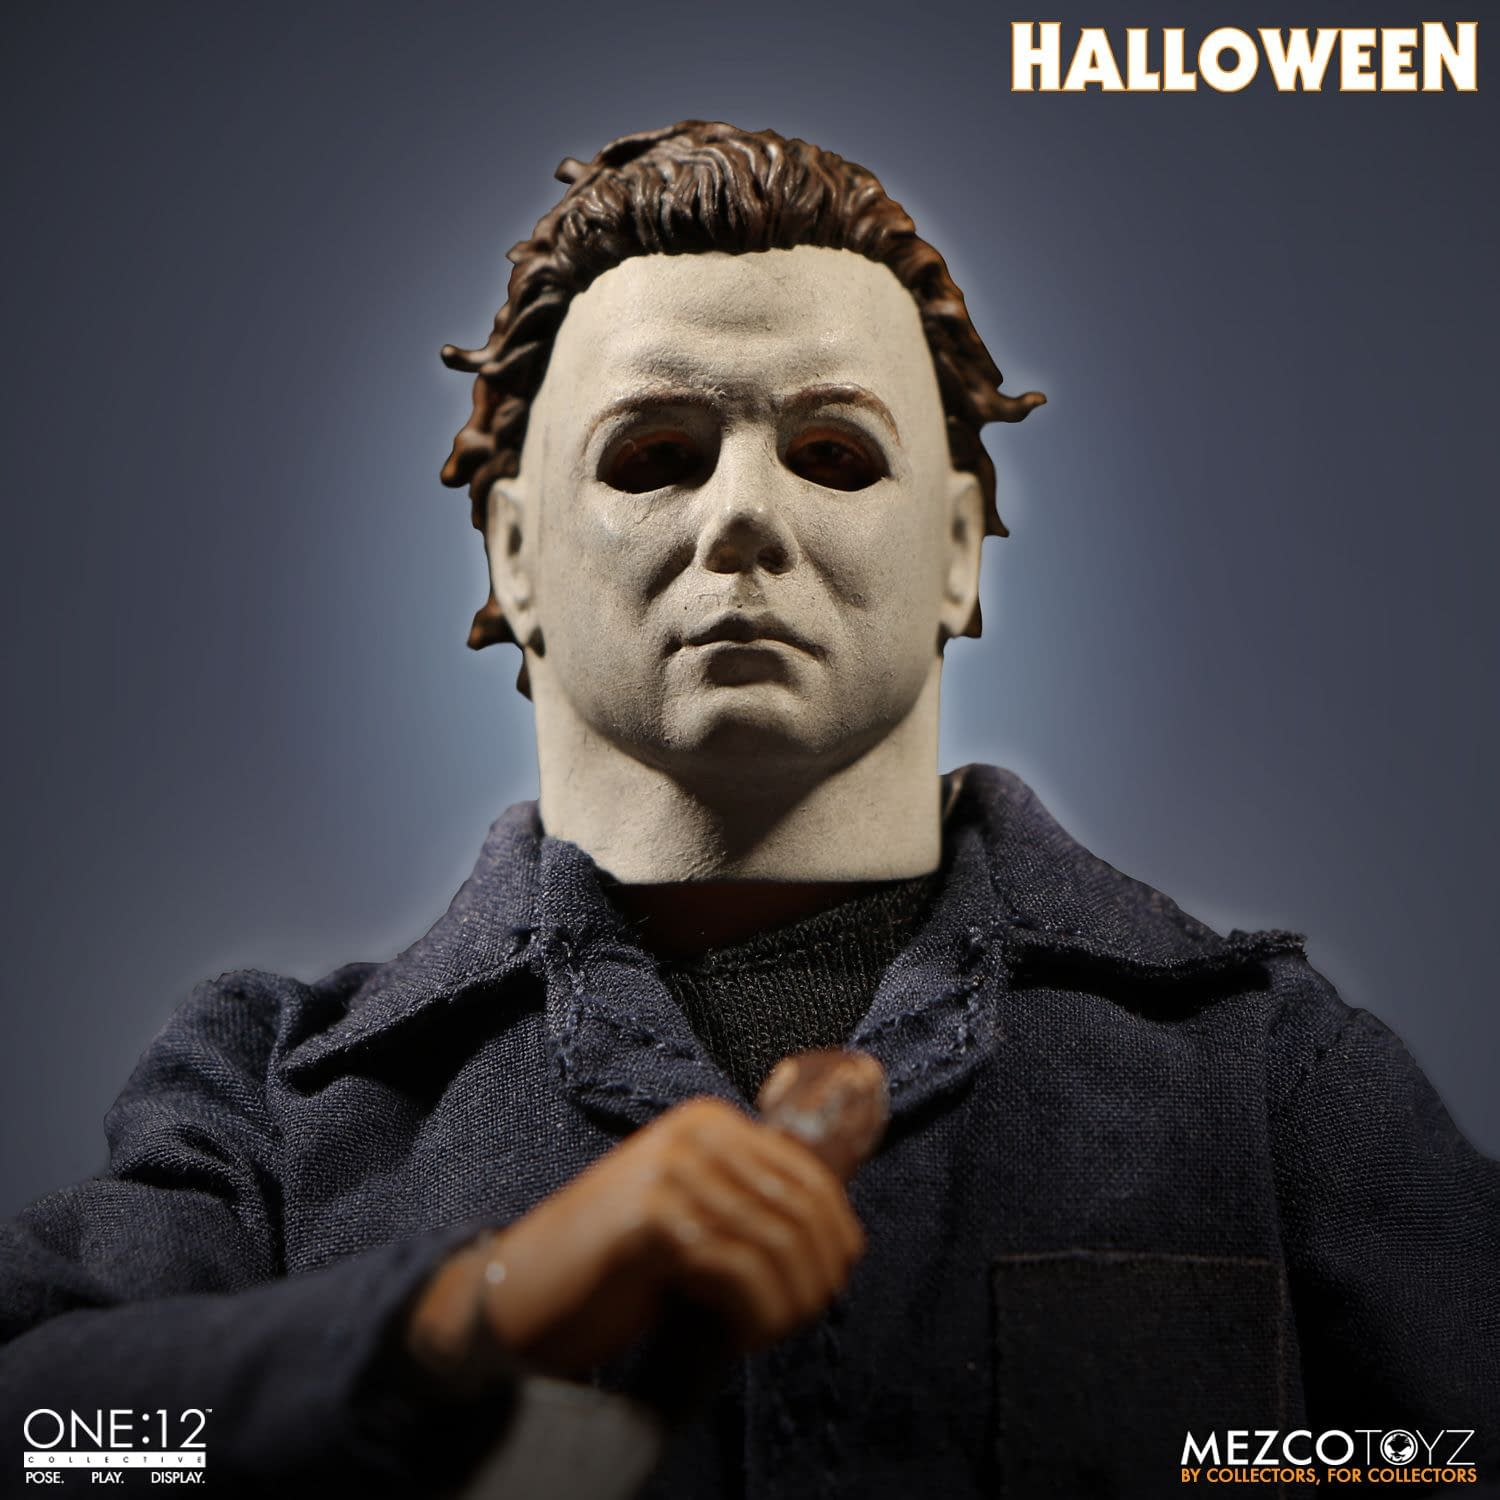 Michael Myers Goes Up For Preorder From Mezco Tomorrow – Happy Halloween!